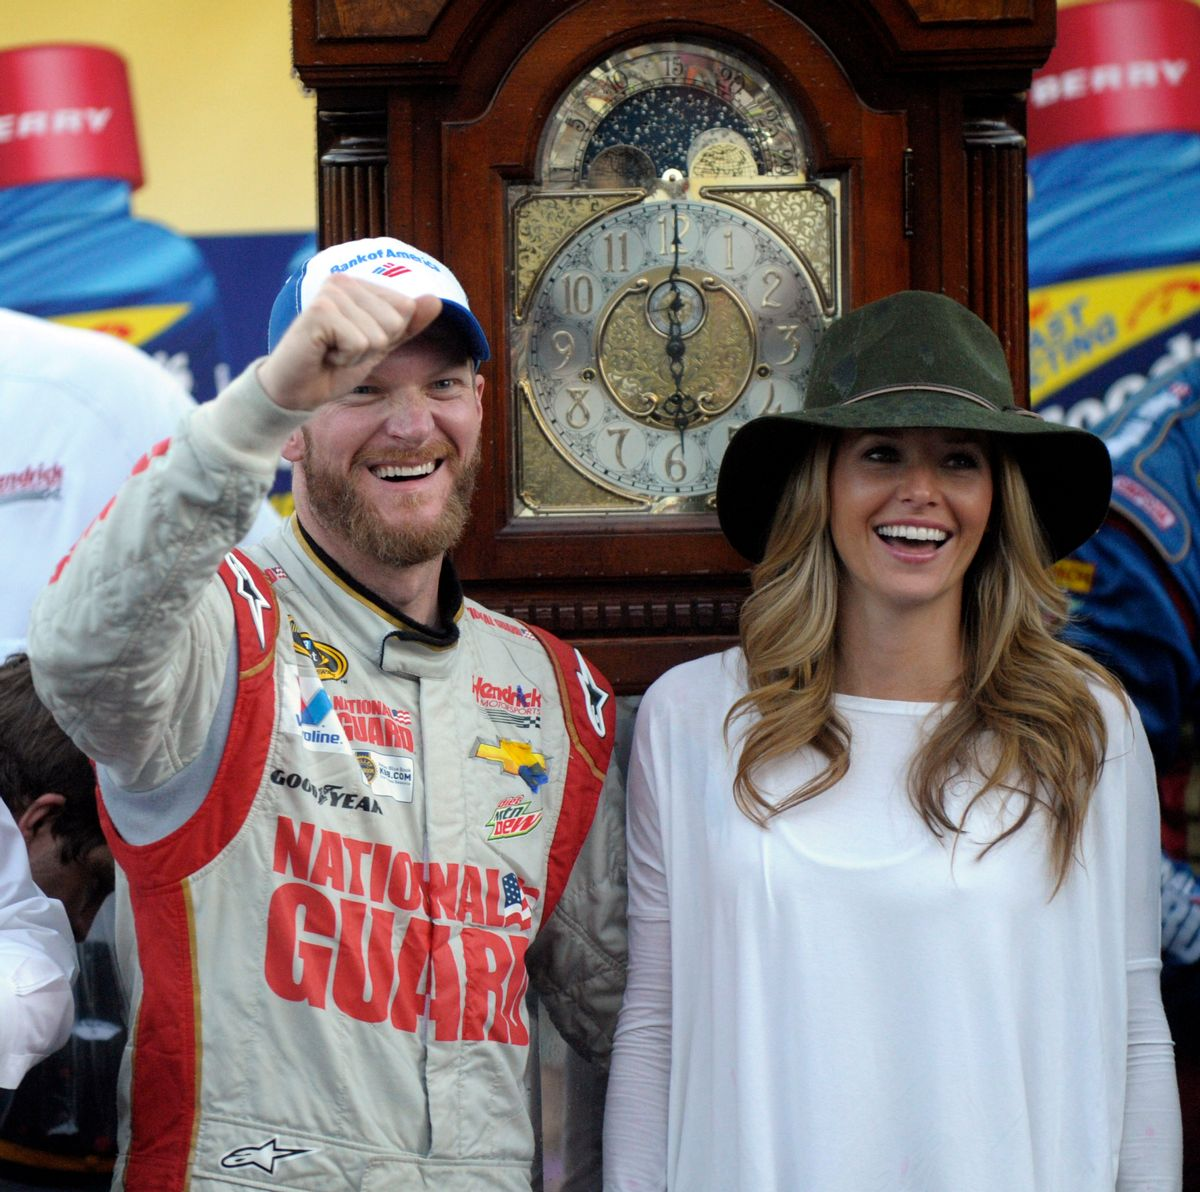 Dale Earnhardt Jr., left, and his girlfriend Amy Reimann, right, celebrate after he won the NASCAR Sprint Cup Series auto race at Martinsville Speedway in Martinsville, Va., Sunday, Oct. 26, 2014. The grandfather clock, background, is the winner's trophy. (AP Photo/Don Petersen) (AP)